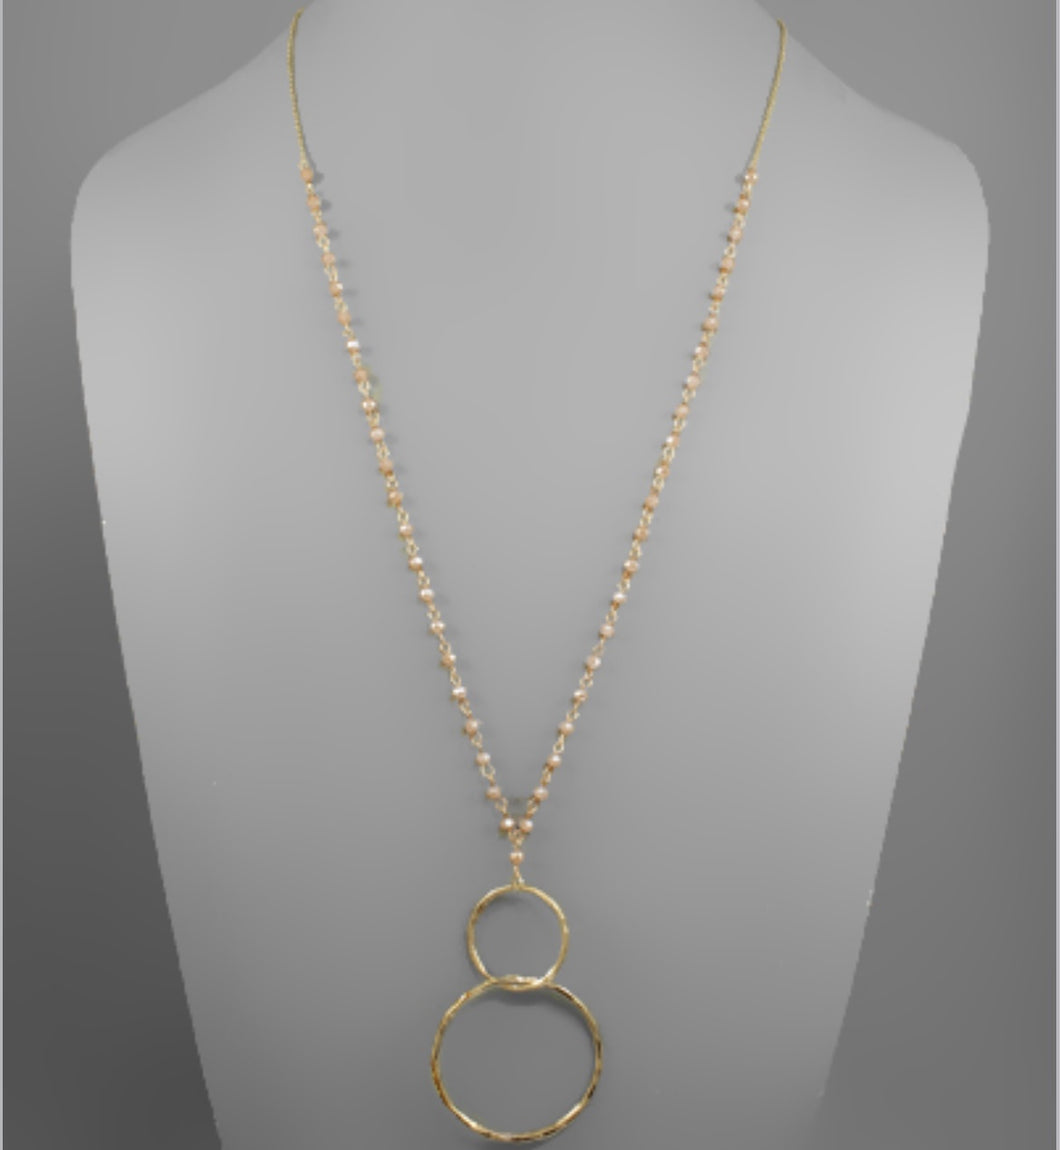 Linked Circle & Glass Bead Necklace